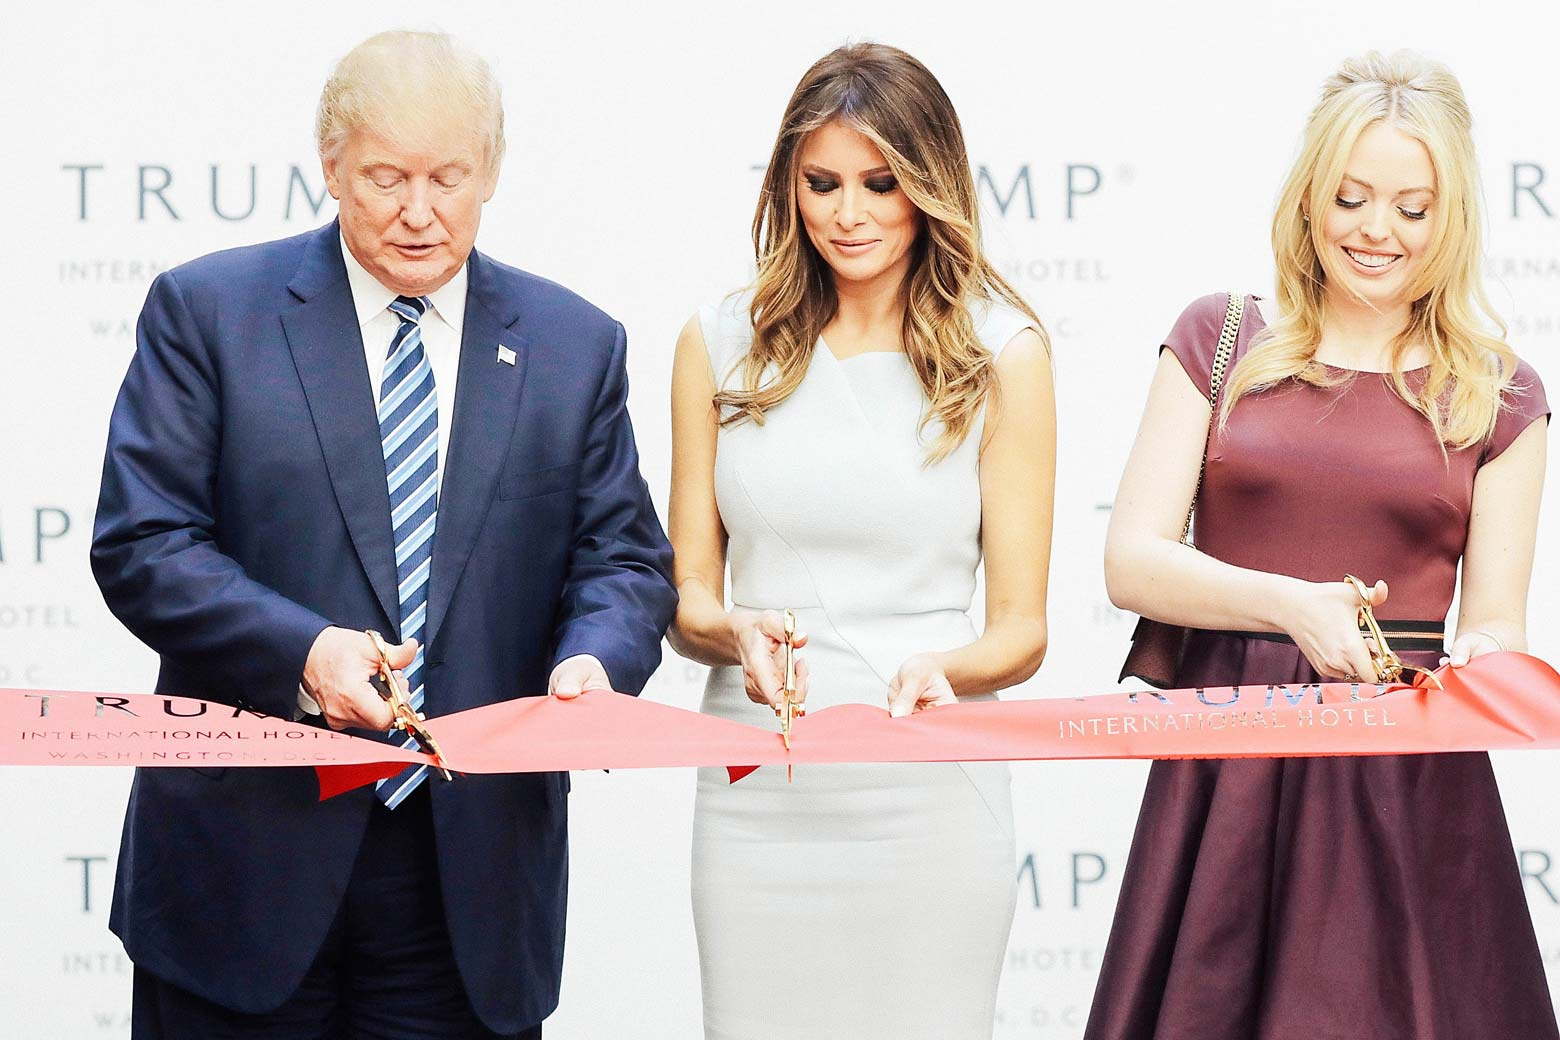 Donald, Melania, and Tiffany Trump cut the ribbon at the Trump International Hotel.